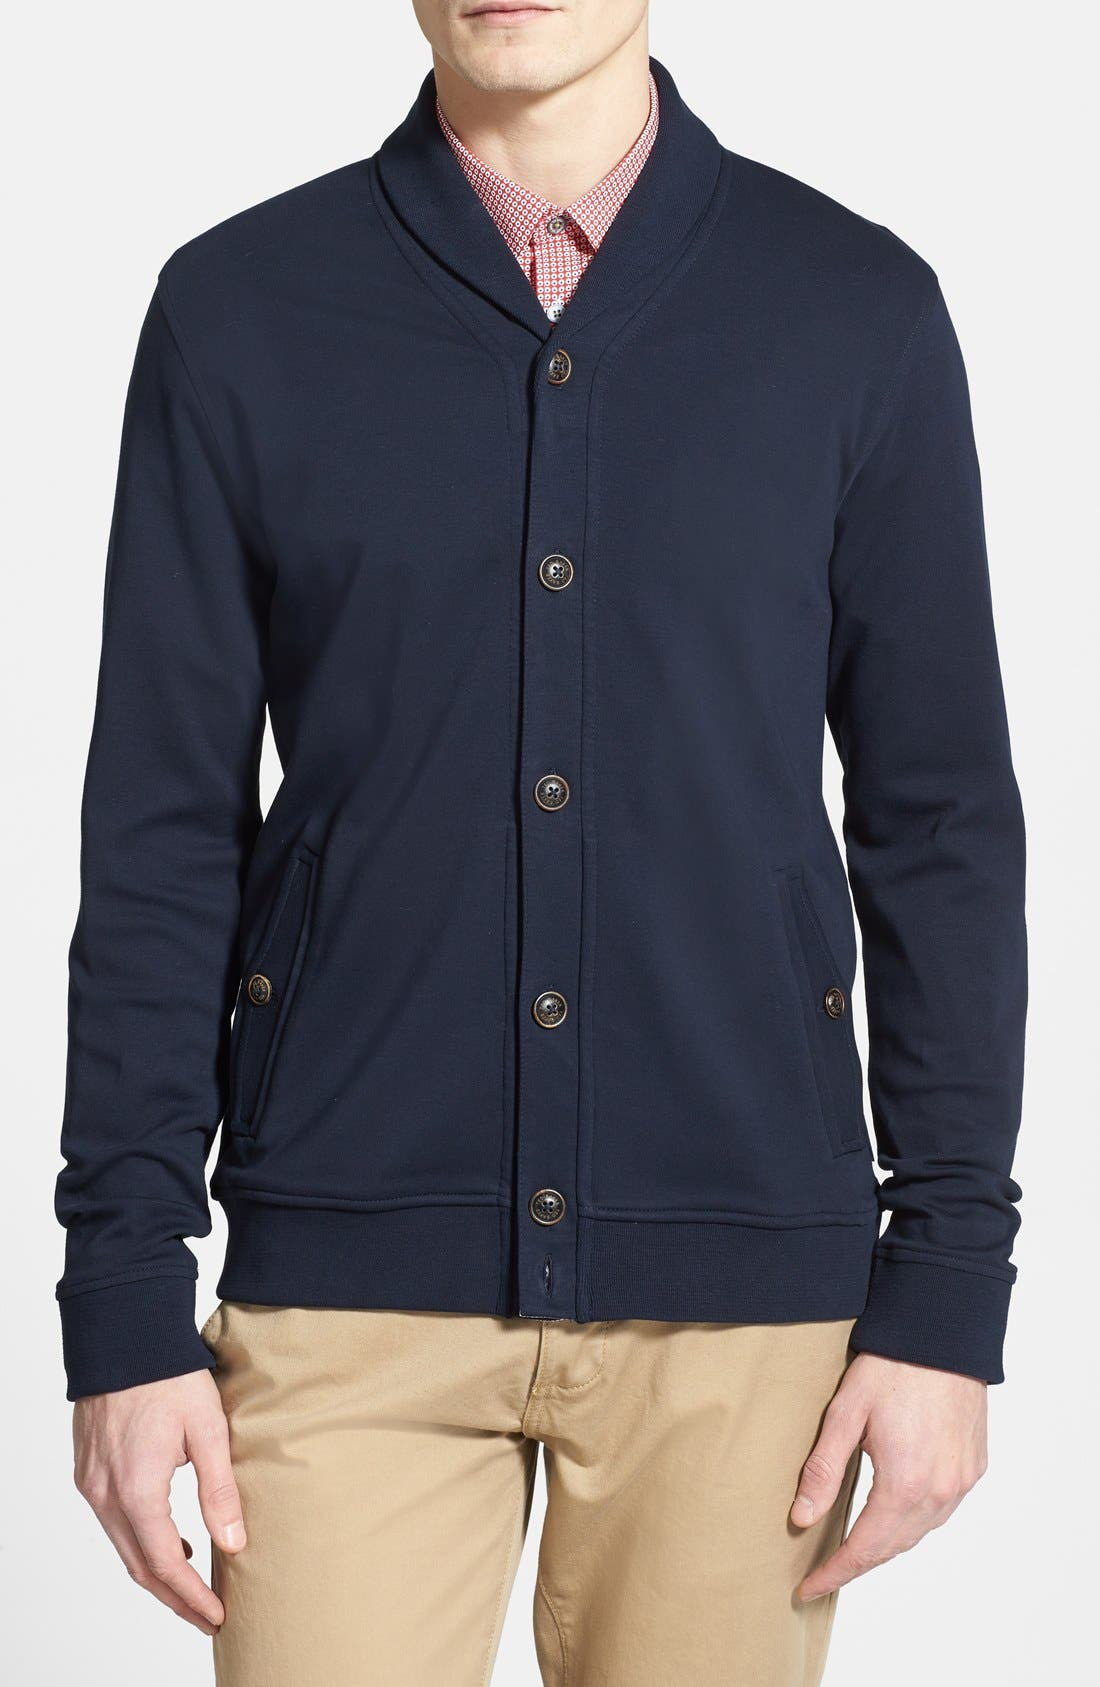 Alternate Image 1 Selected - Ted Baker London 'Norre' Cardigan